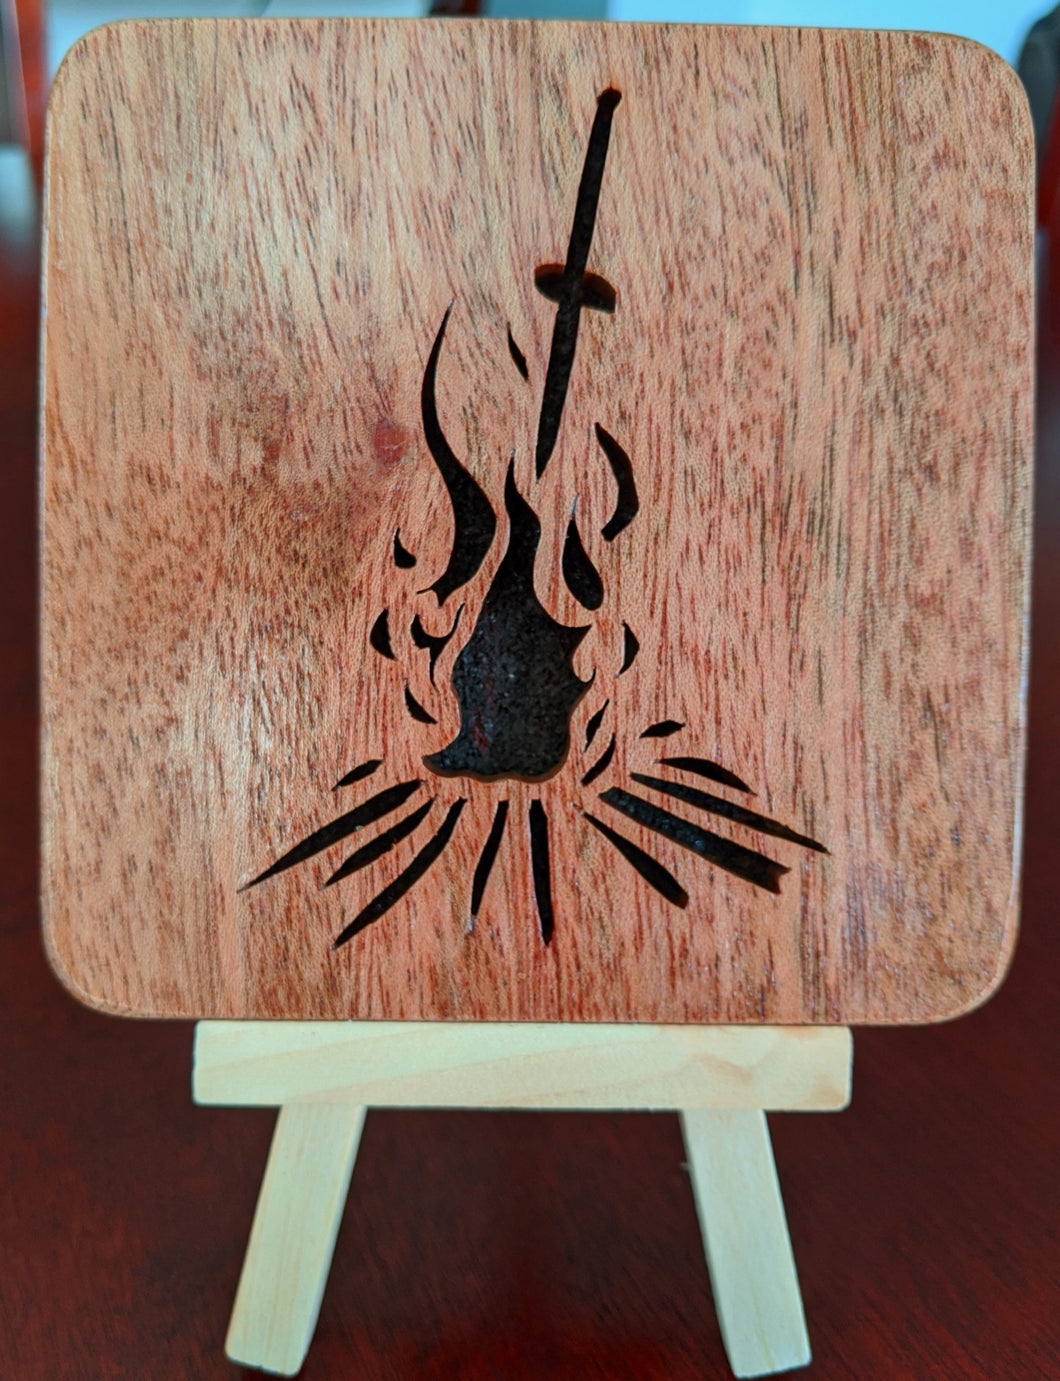 Dark Souls Bonfire Hand Cut Wooden Deskoration